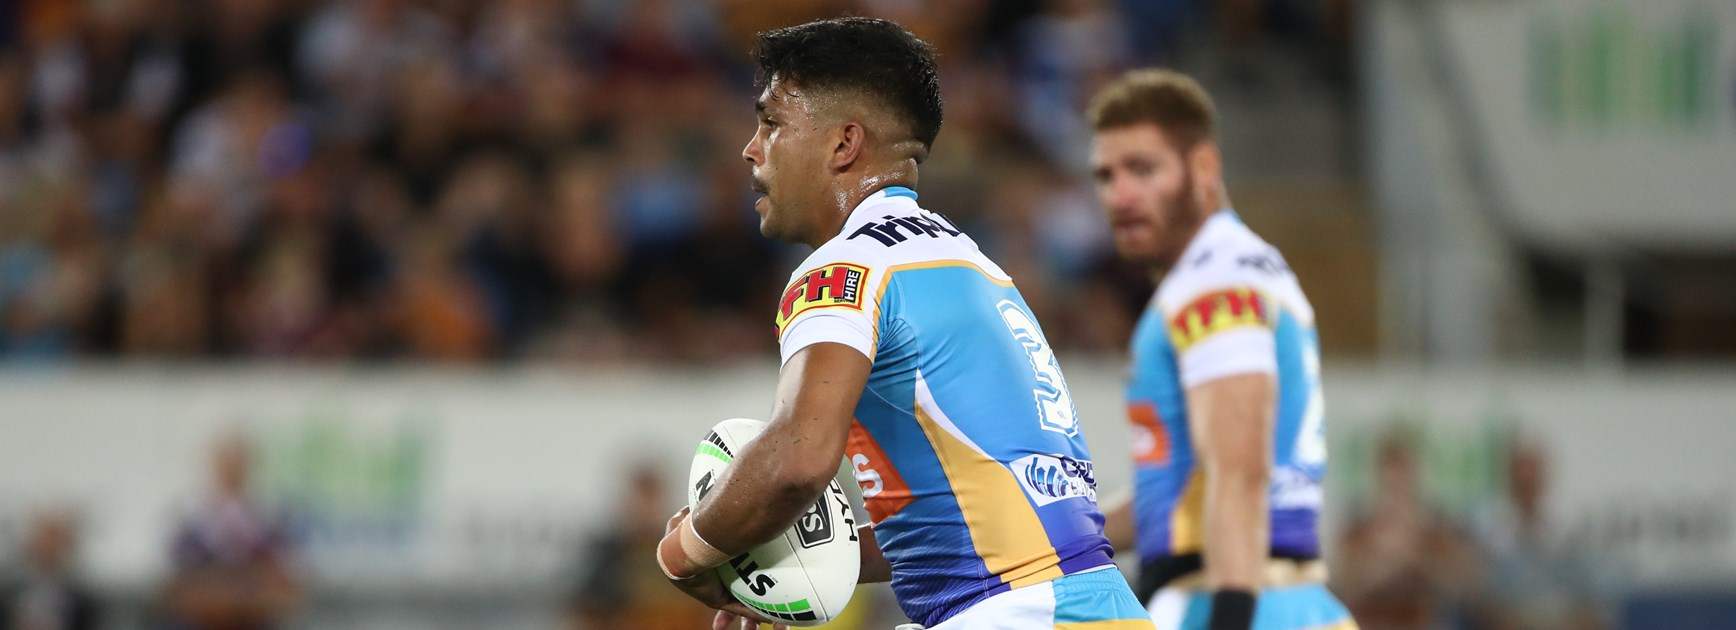 Peats in awe of Peachey's raw talent